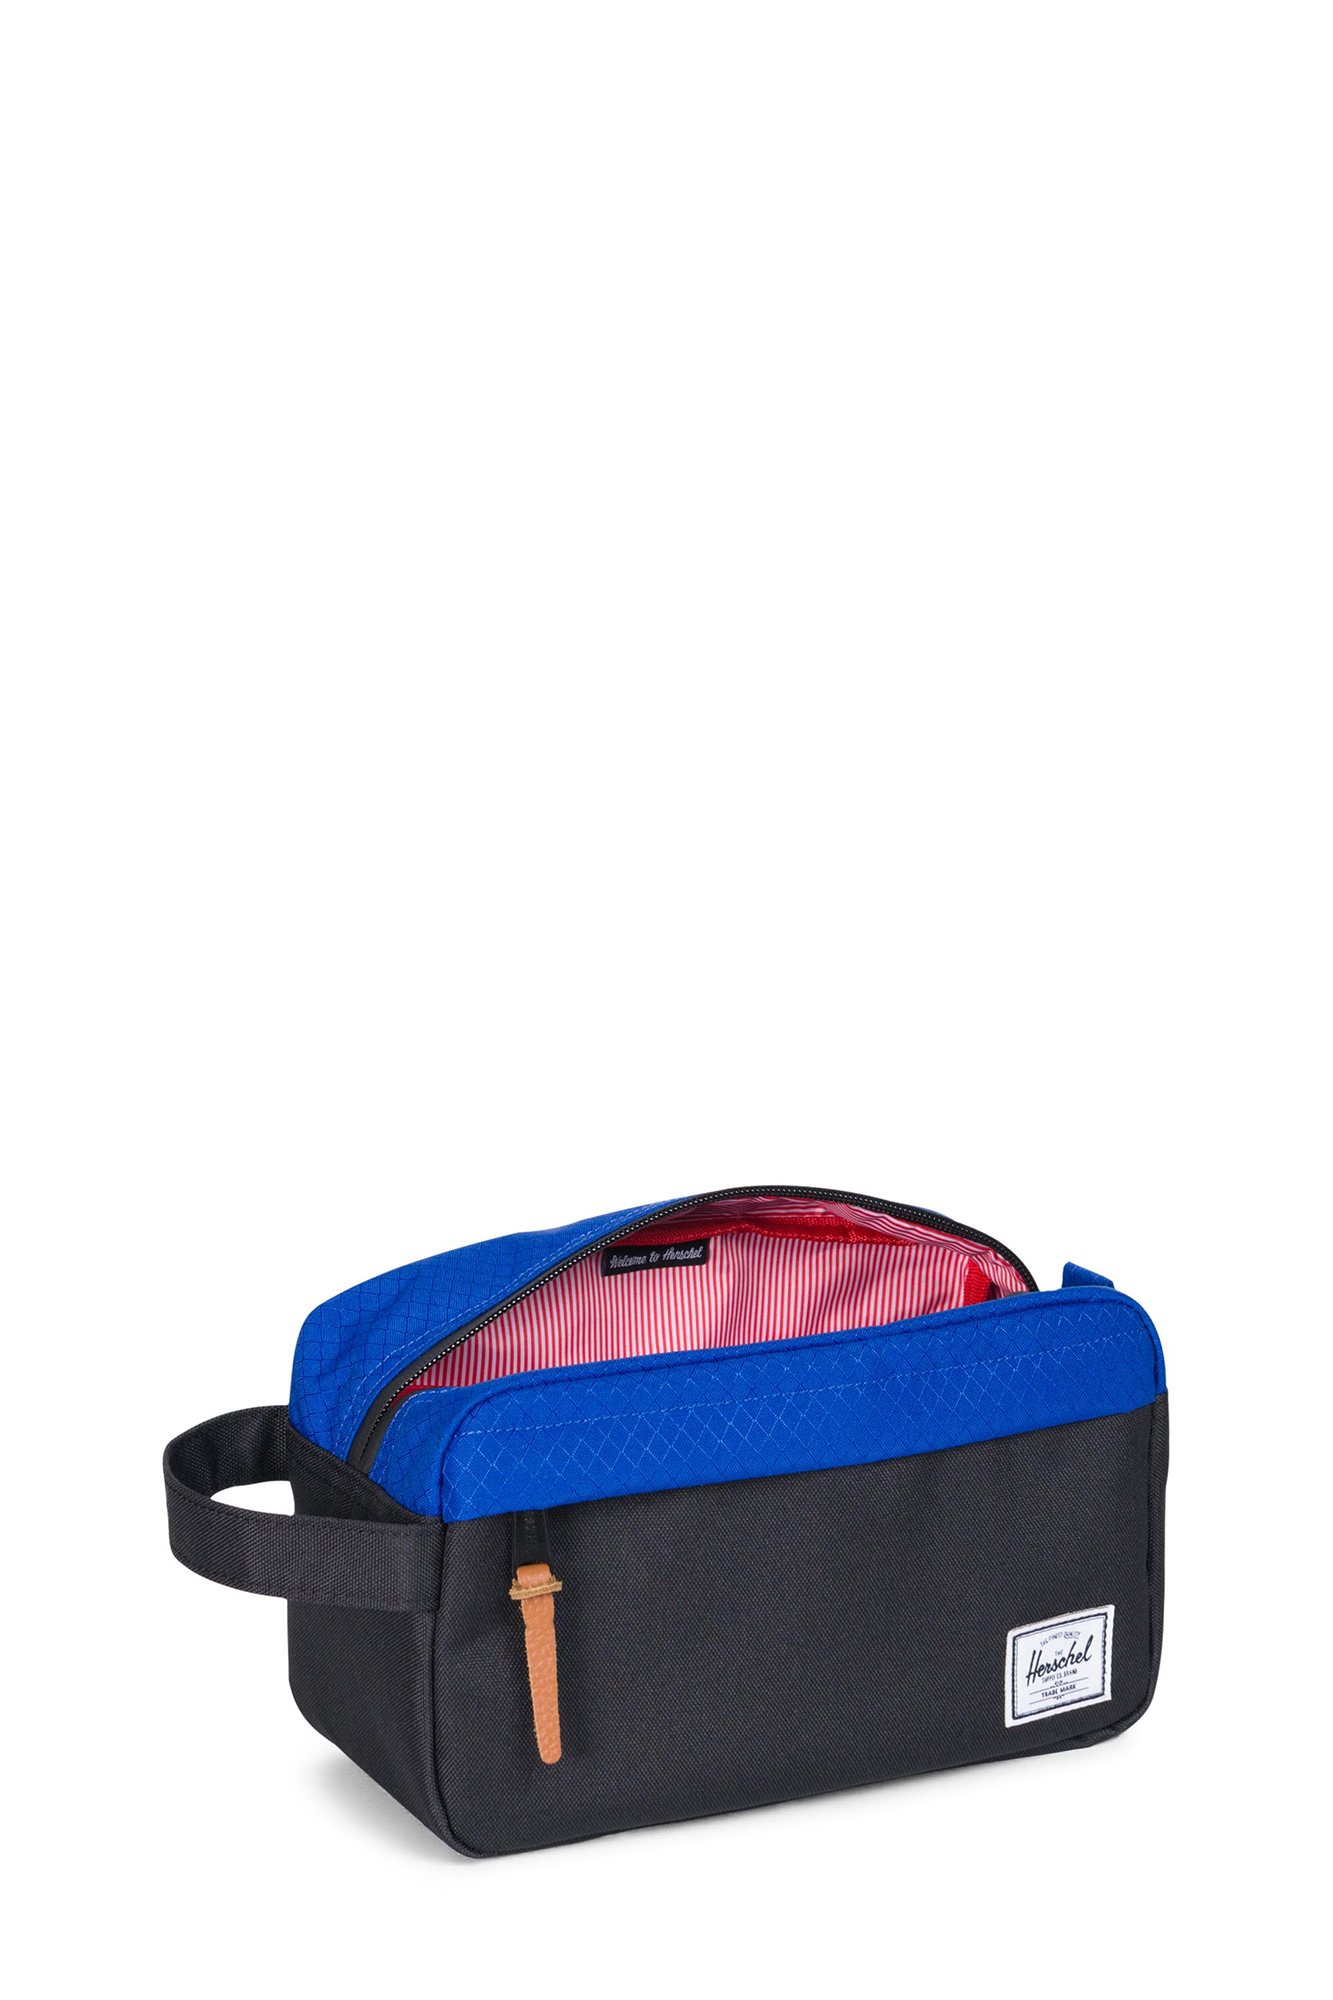 Herschel - Beauty Case Chapter Black/Surf